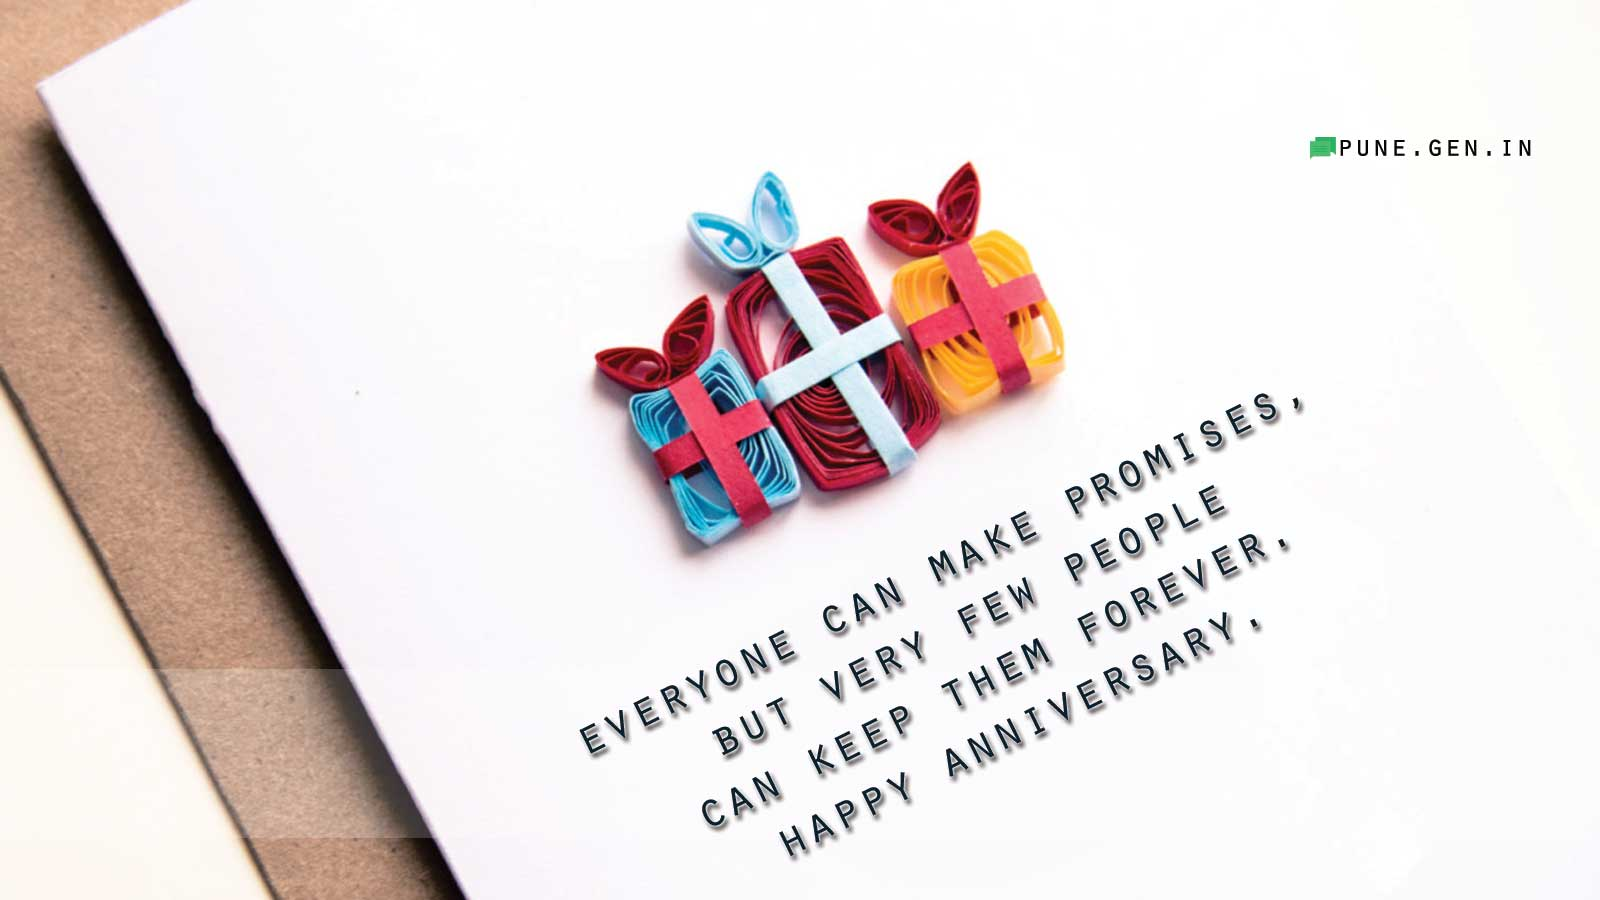 25th Anniversary Wishes Silver Jubilee Wedding Anniversary Quotes